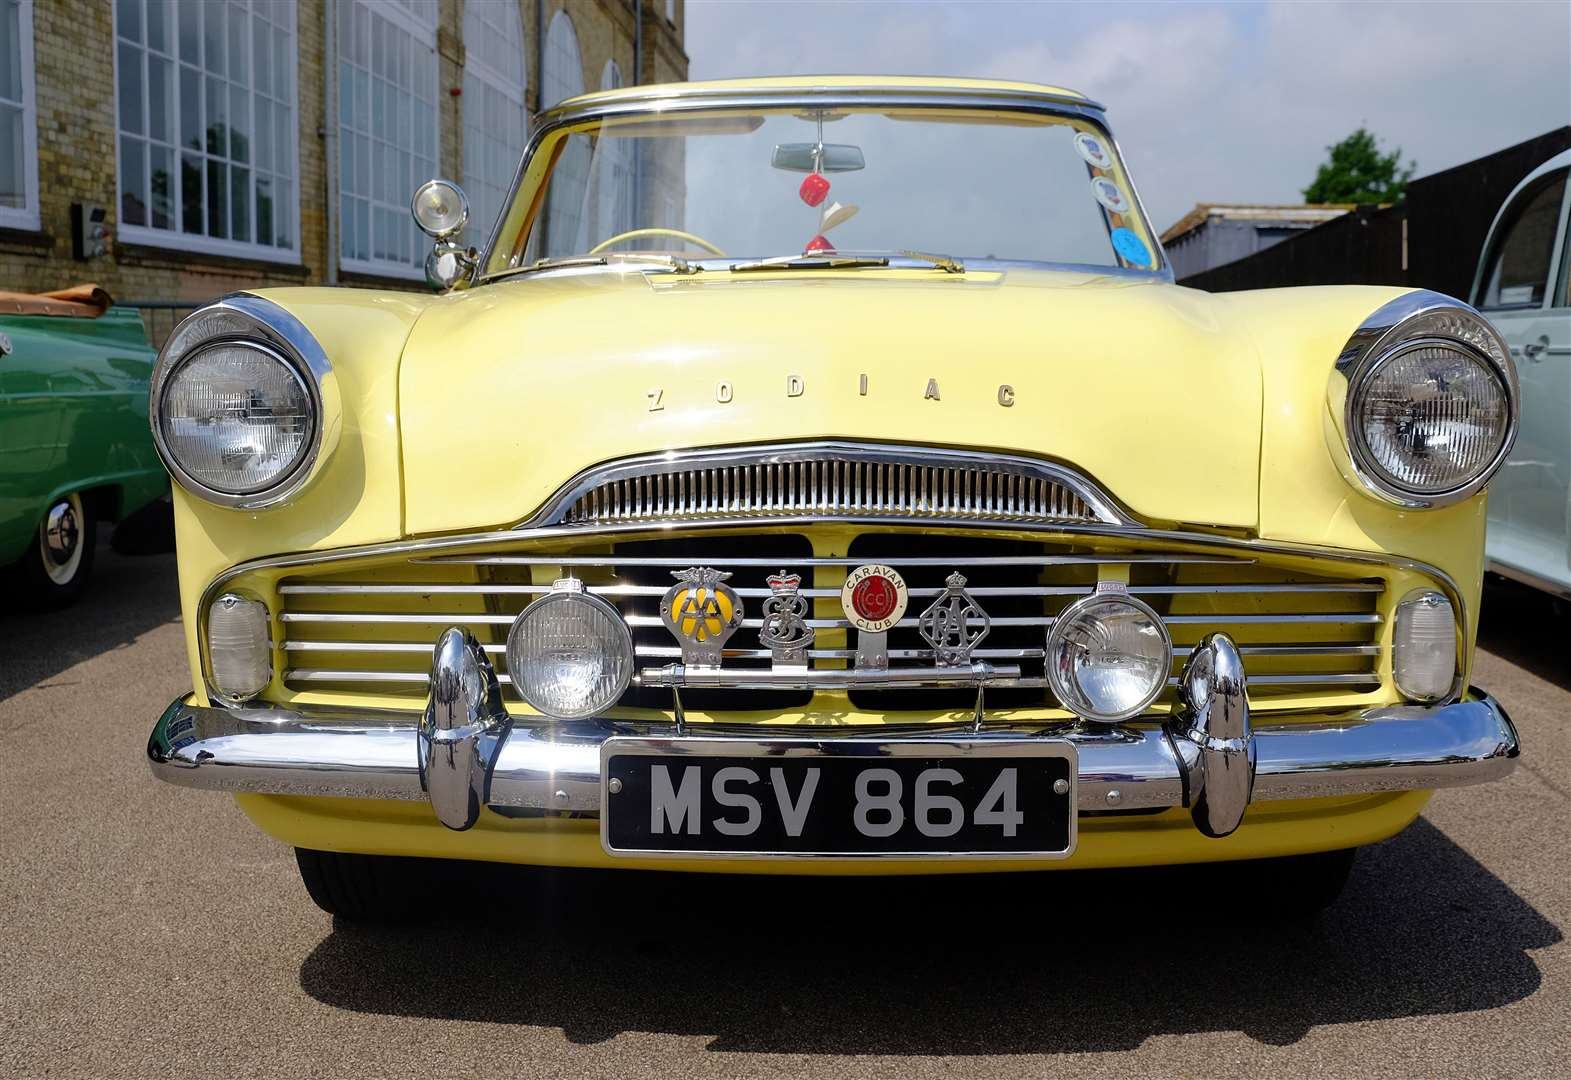 From vintage vehicles to supercars, Sunday's family-friendly Motor Show EAST has it all